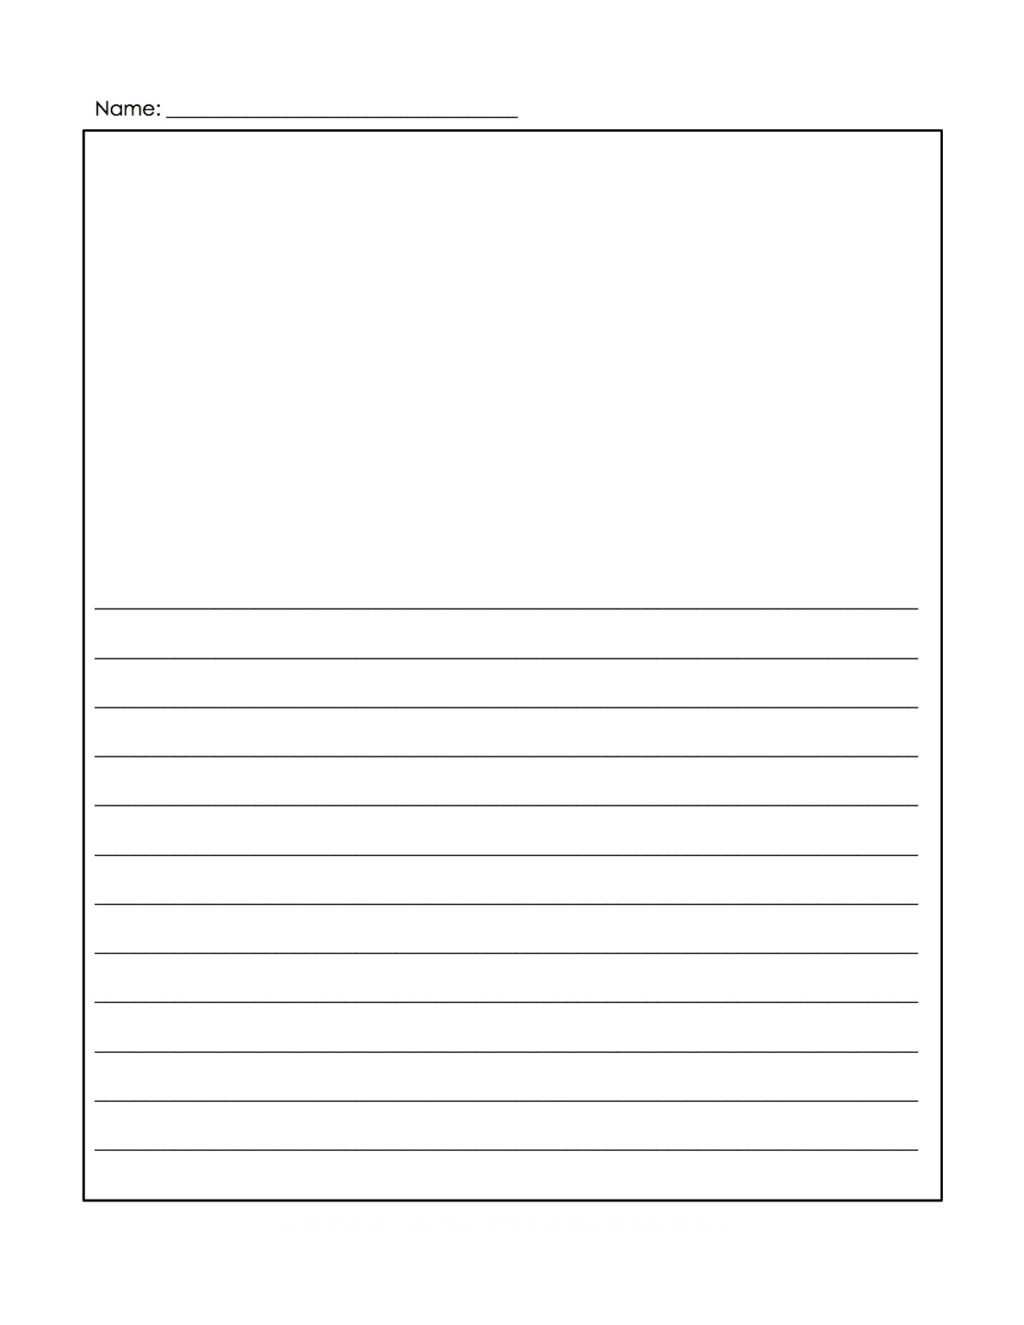 lined paper with picture box, printable lined paper with picture box, lined writing paper with picture box, free lined paper with picture box, kindergarten lined paper with picture box, primary lined paper with picture box, free printable lined paper with picture box, lined paper with picture box pdf, writing lined paper with picture box printable free, free lined writing paper with picture box, elementary lined paper with picture box, lined paper template with picture box, free primary lined paper with picture box, printable lined paper with box for picture, lined copy paper with picture box kids, lined paper with a picture box, plain primary lined paper with picture box, picture box with lined paper, lined writing paper template with picture box middle school, lined handwriting paper with picture box, dotted lined paper with picture box, half sheet lined writing paper with picture box, handwriting lined paper with picture box, lined writing paper with picture box 2nd grade, fundations lined paper with picture box, lined paper with picture box landscape, lined writing paper with a picture box, lined paper with box for picture, lined writing paper with picture box printable, landscape lined paper with picture box left margins, lined paper with picture box on top, intermediate lined writing paper with box for picture, lined paper for first grade with picture box, lined paper pdf with picture box, lined paper with picture box template 3 step, free printable lined writing paper with picture box book style, kindergarten lined paper with picture box thanksgiving, lined paper with picture box pdf free, bulk handwriting lined paper for primary with picture box, lined paper with picture box free, lined letter paper with picture box, lined writing paper with picture box for first grade, 1st grade large lined writing paper with picture box, lined paper with picture box word, free printable lined writing paper with picture box, christmas lined paper with picture box printable,